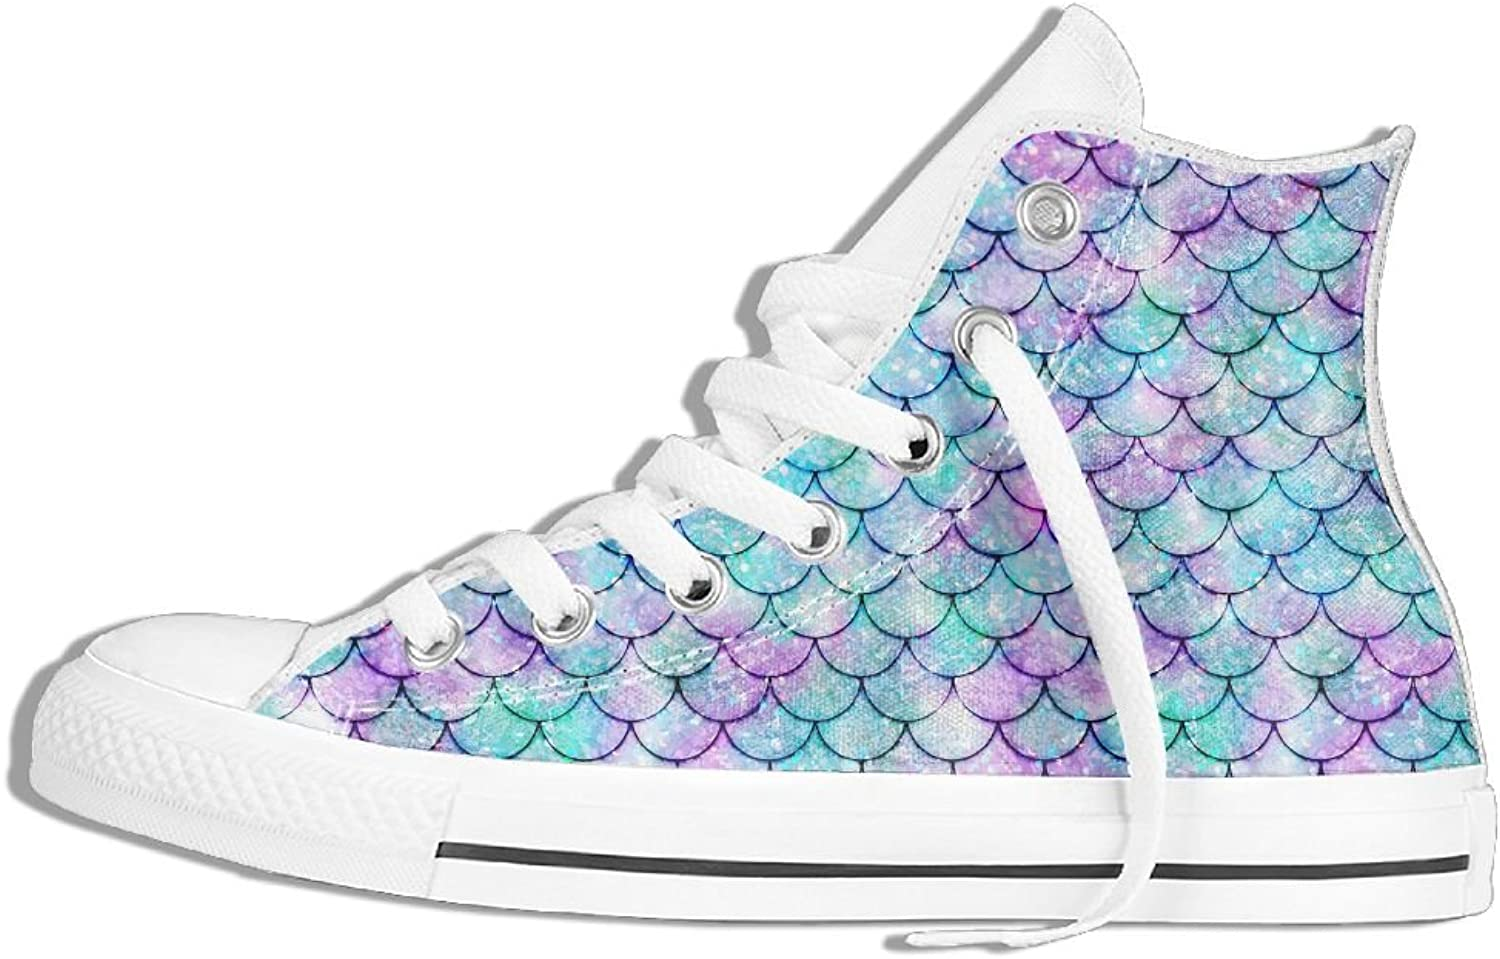 Womens High Top Canvas Sneakers Mermaid Scales Pattern Lace Up Non-slip Running Trainers shoes